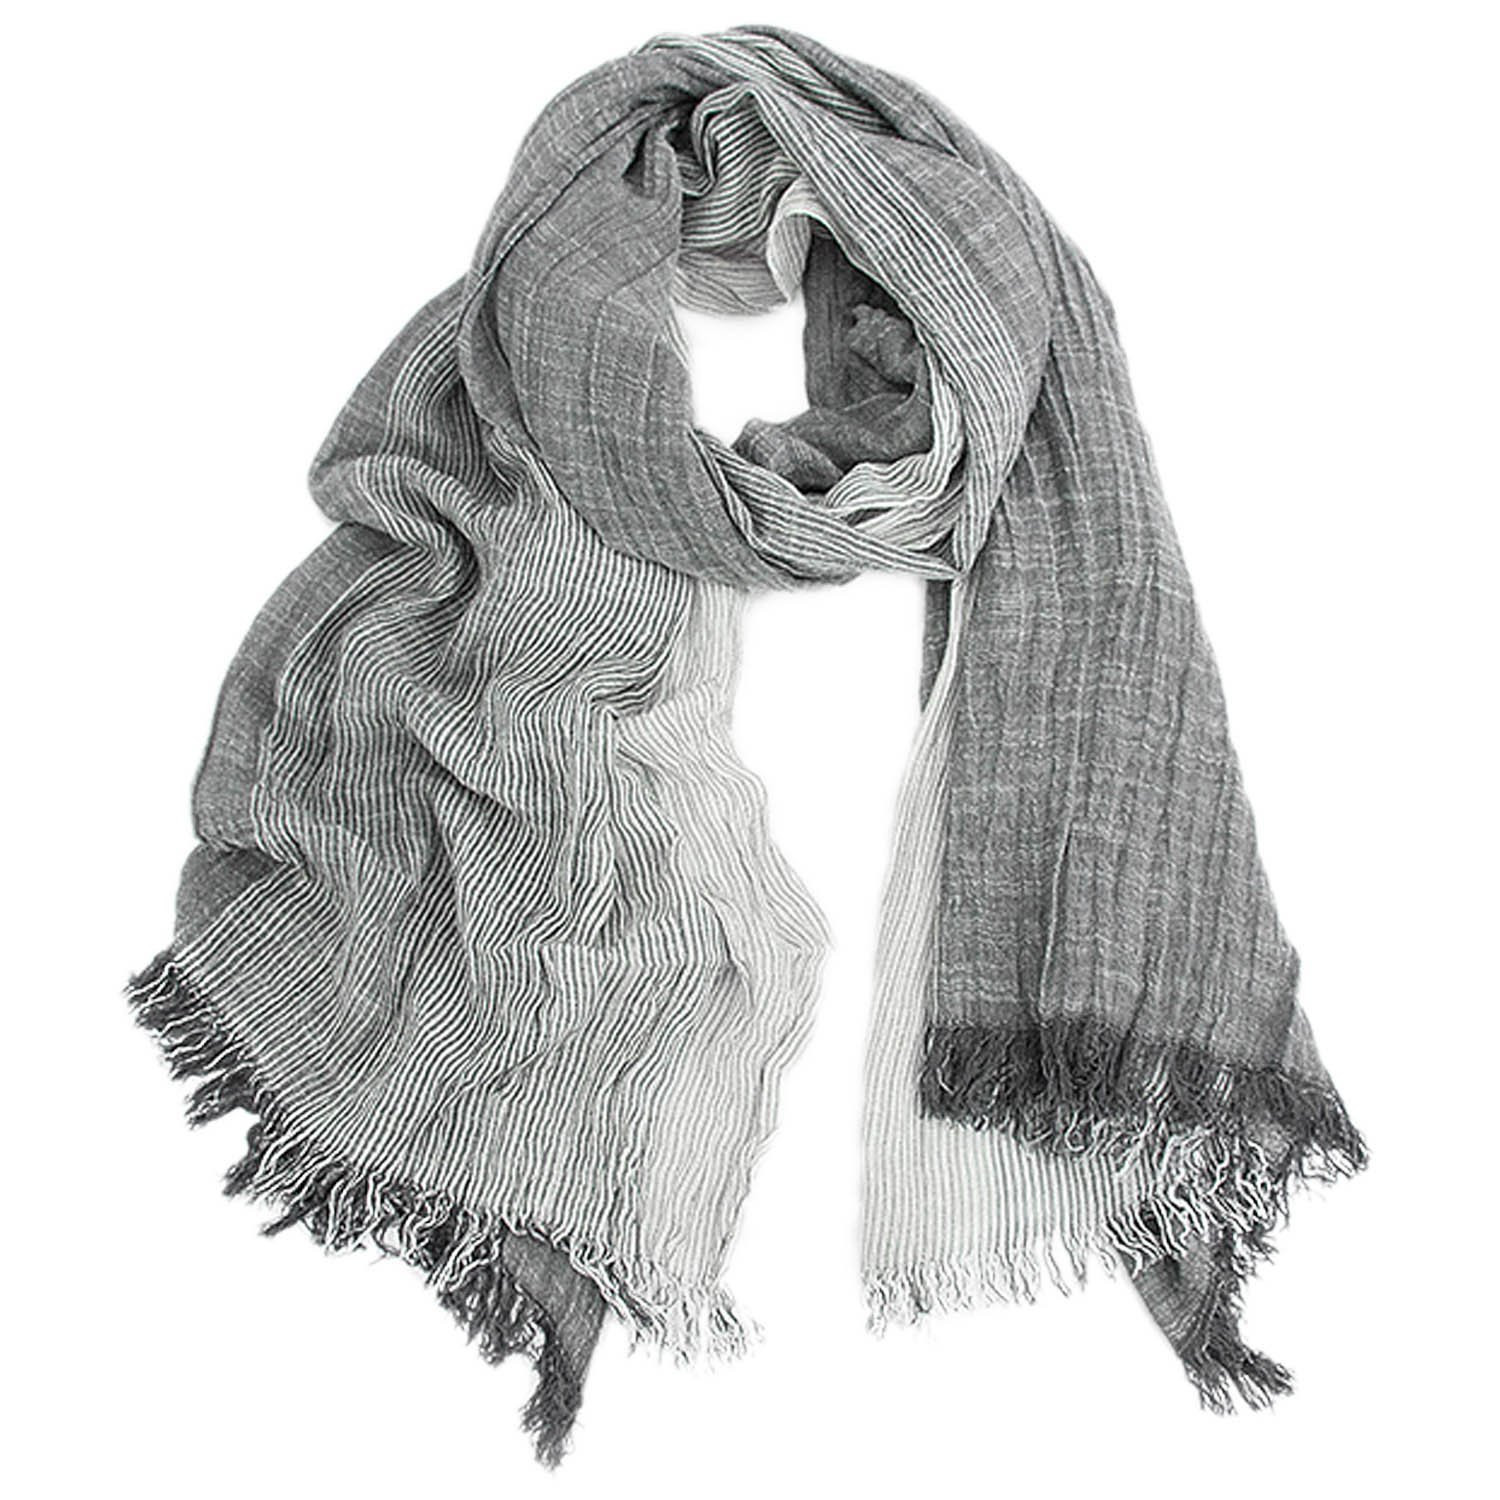 Kalevel Large Scarf Shawl Wrap Cotton Shawls and Wraps with Fringe - Dark Grey by Kalevel (Image #1)